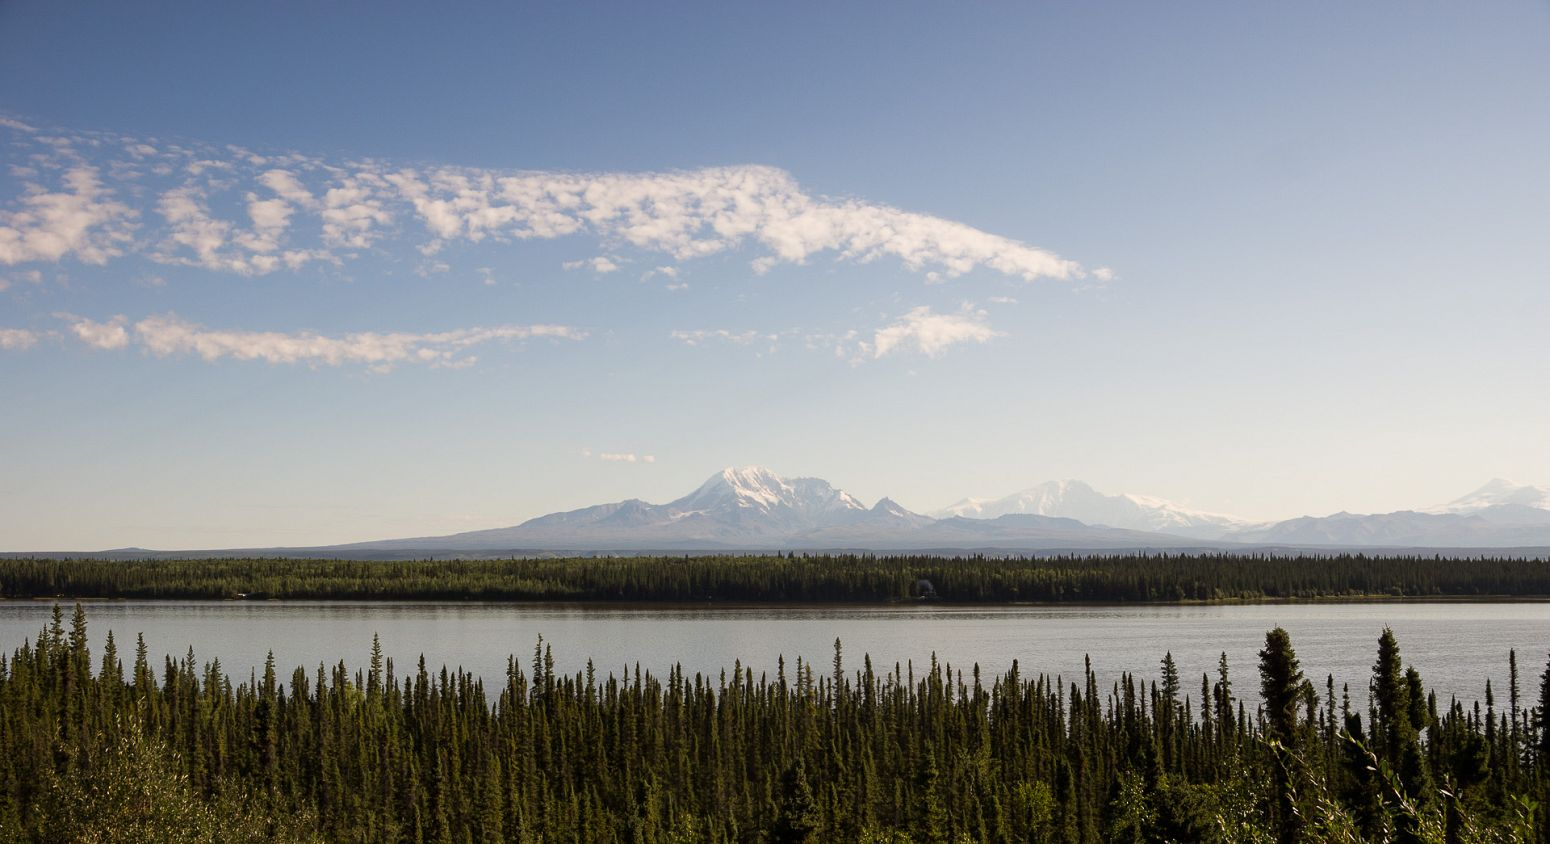 Wrangell-St. Elias National Park from Willow Lake, Alaska, USA